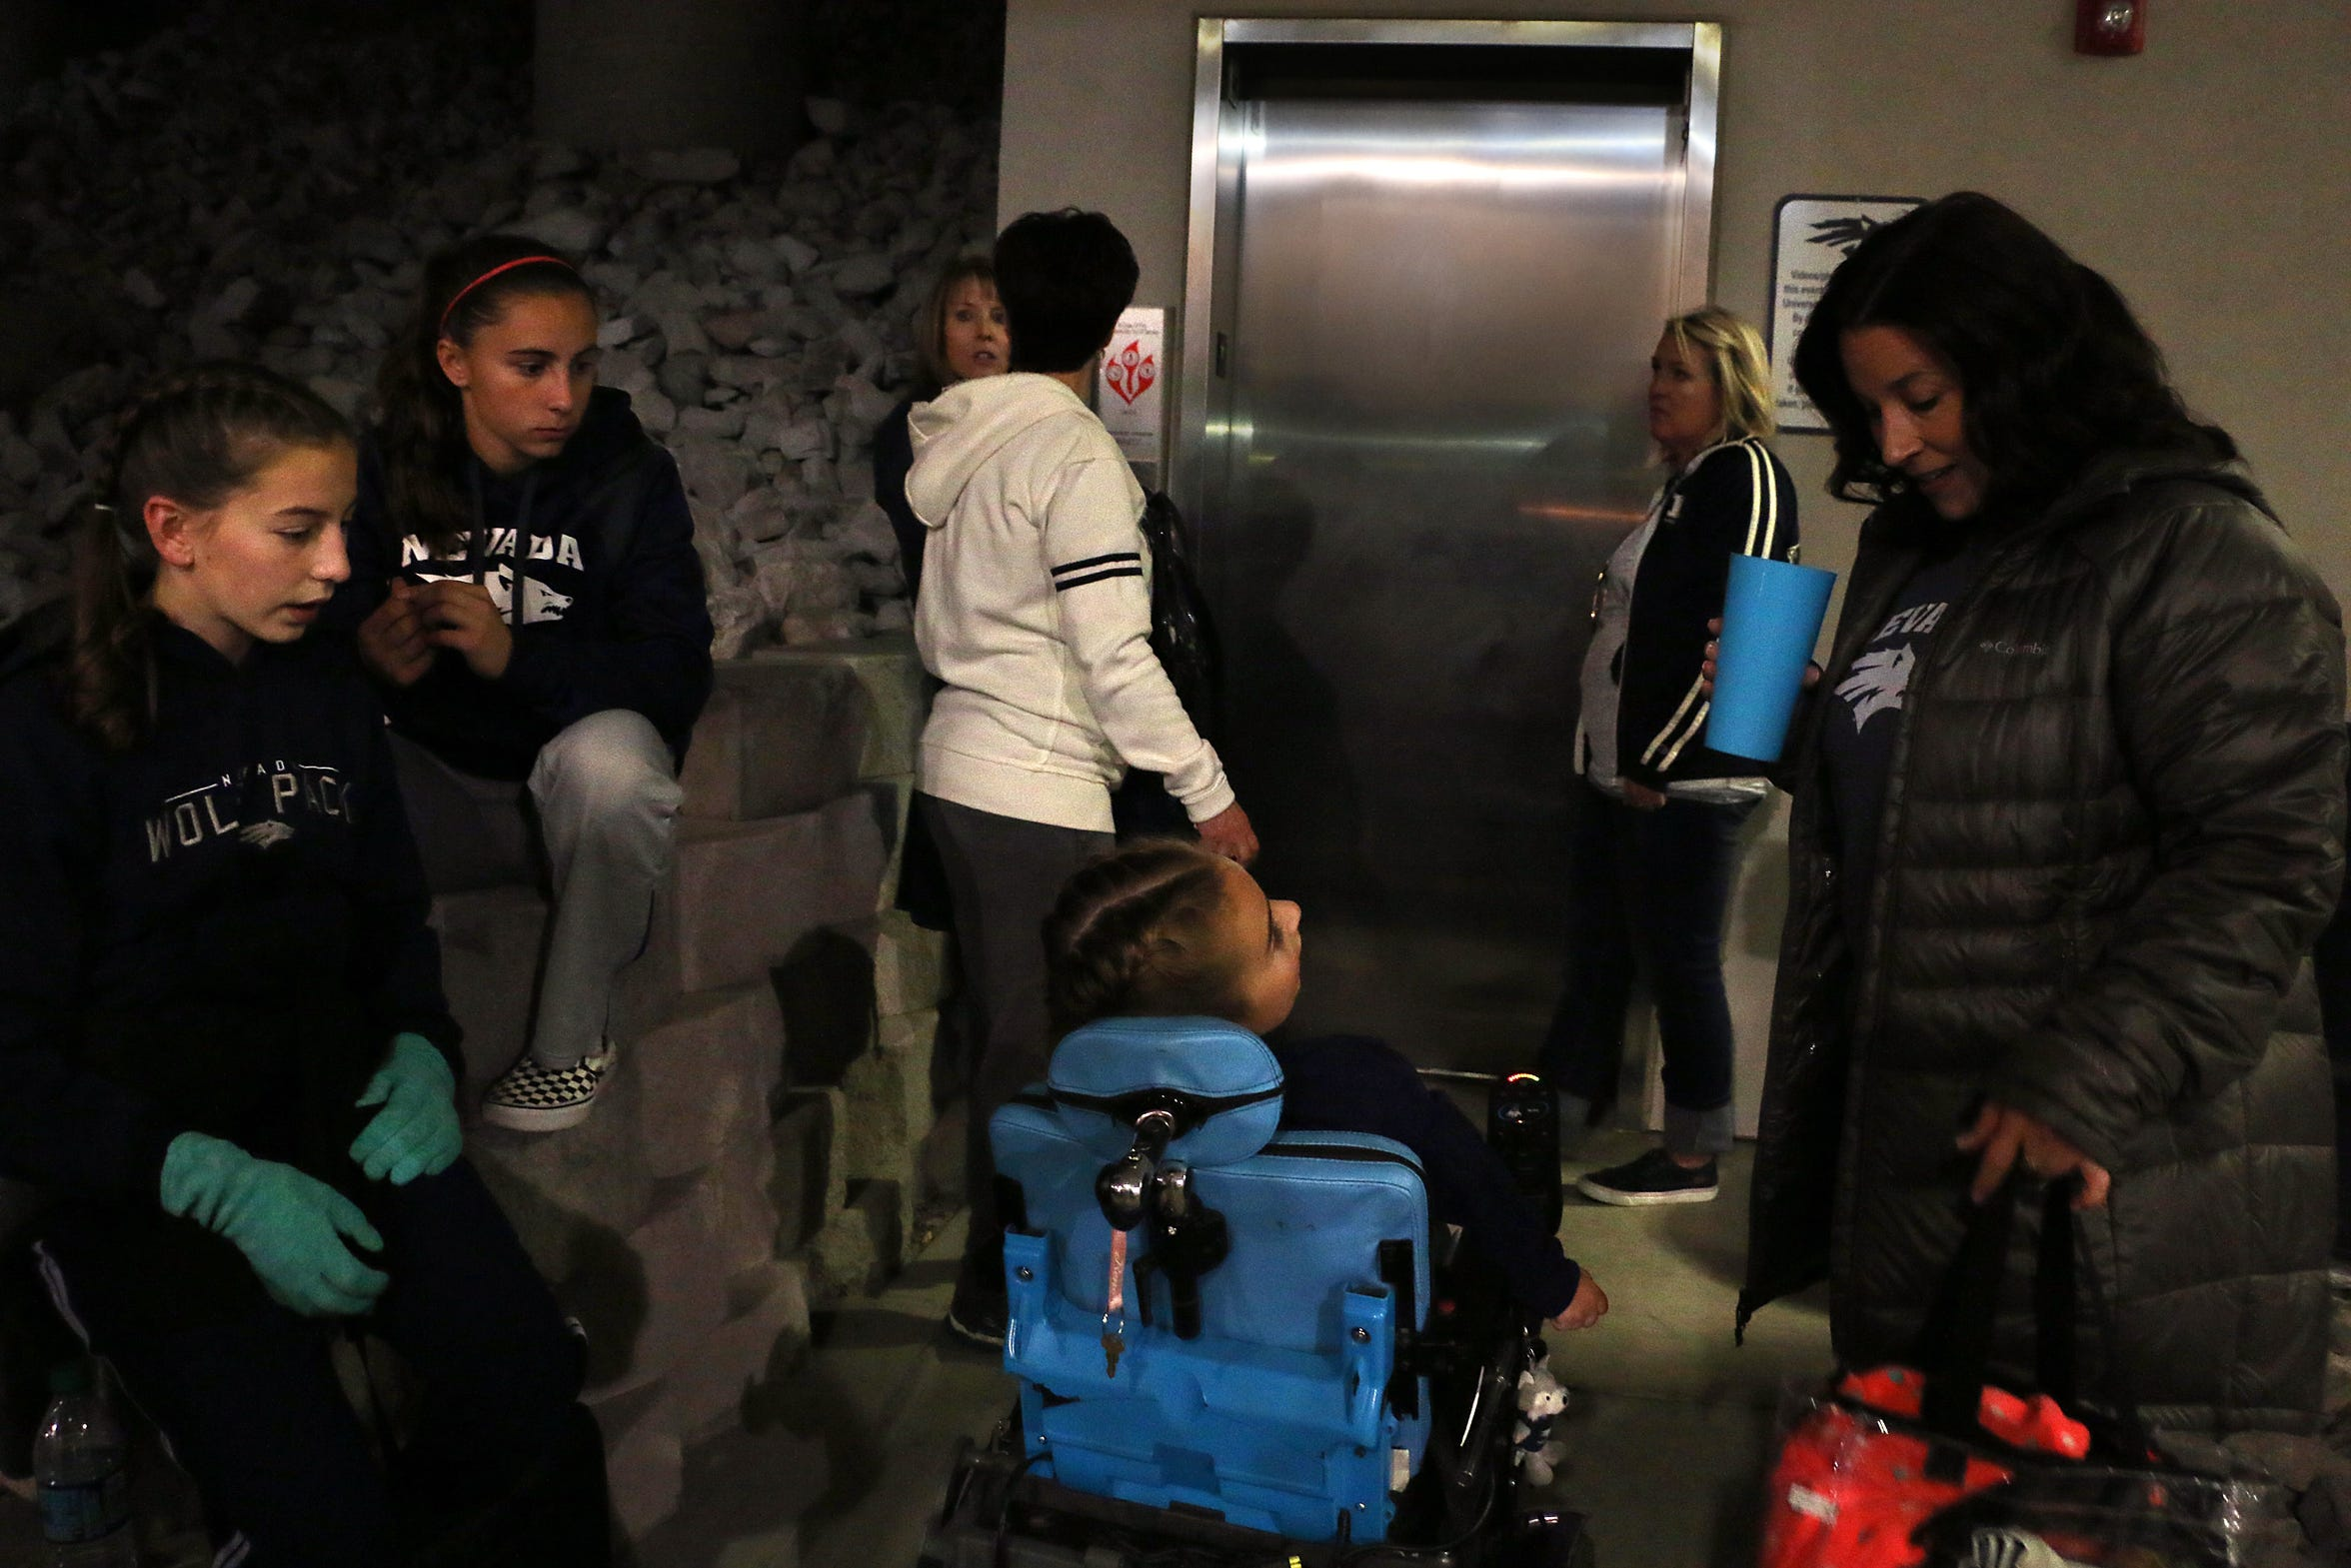 Ella Marini,7, in wheelchair, and her family make their way into Mackay Stadium to see Nevada take on Boise St. in Reno on Oct. 13, 2018.